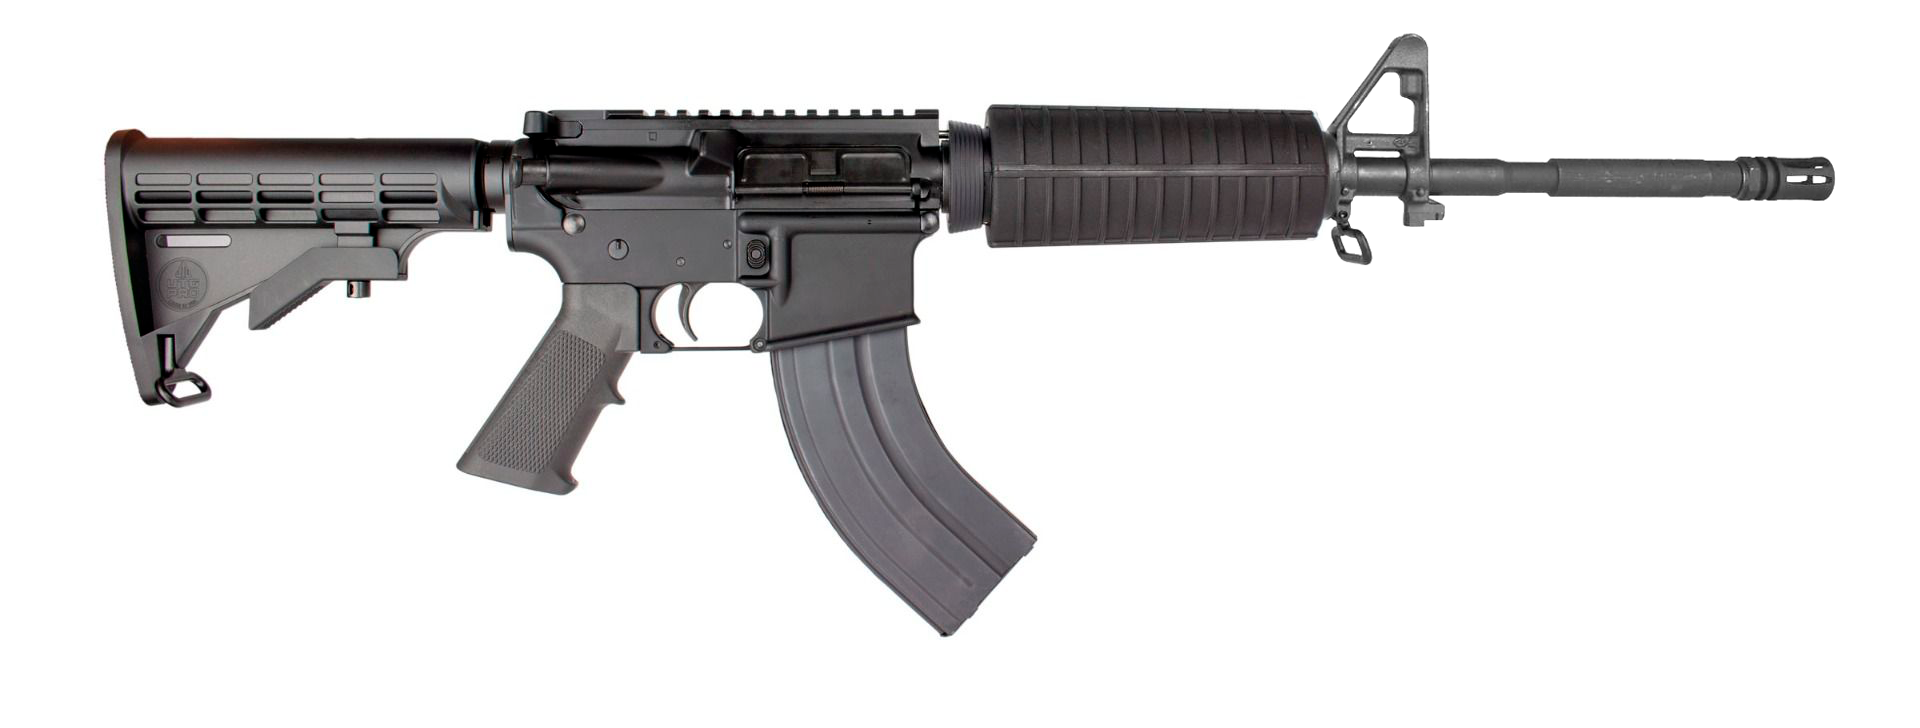 *ARK-16 shown with base 5-position stock, standard grip, basic M16/M4-style forend and barrel.